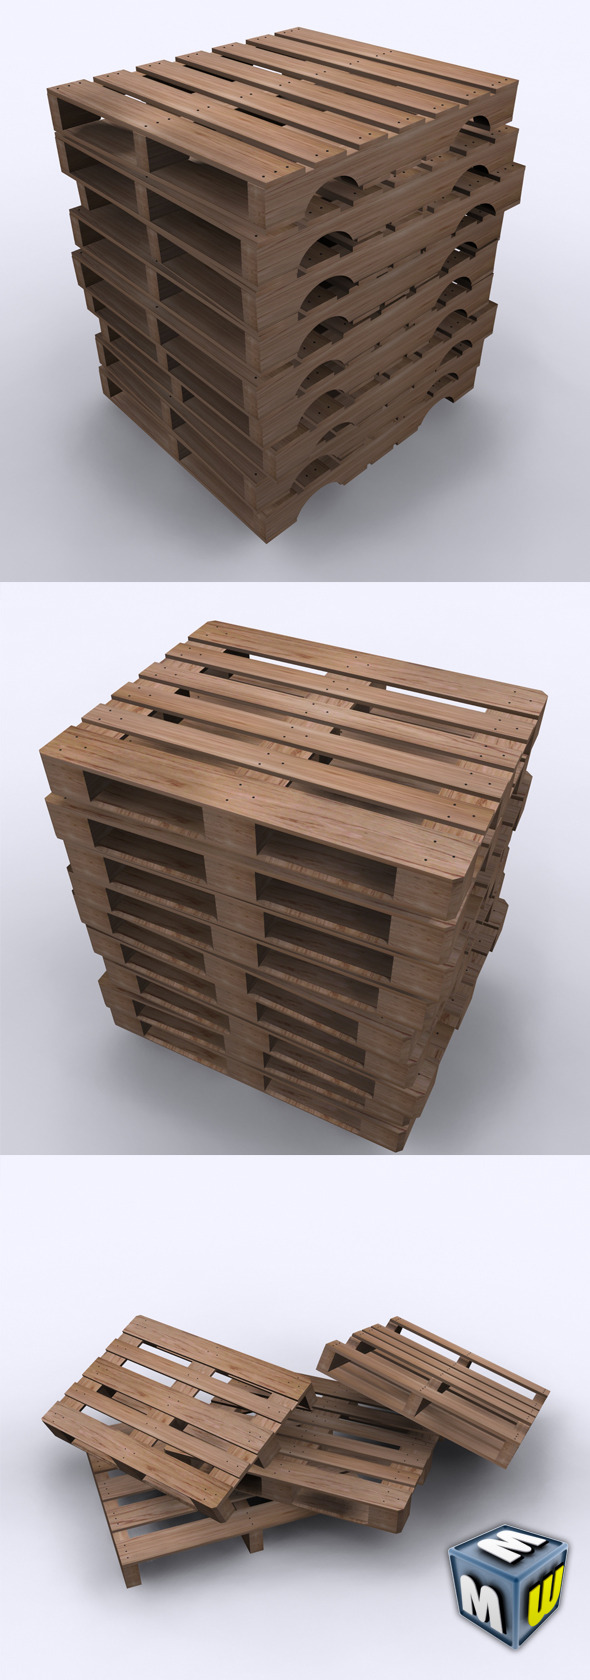 Wood Pallets Max 2010 - 3DOcean Item for Sale